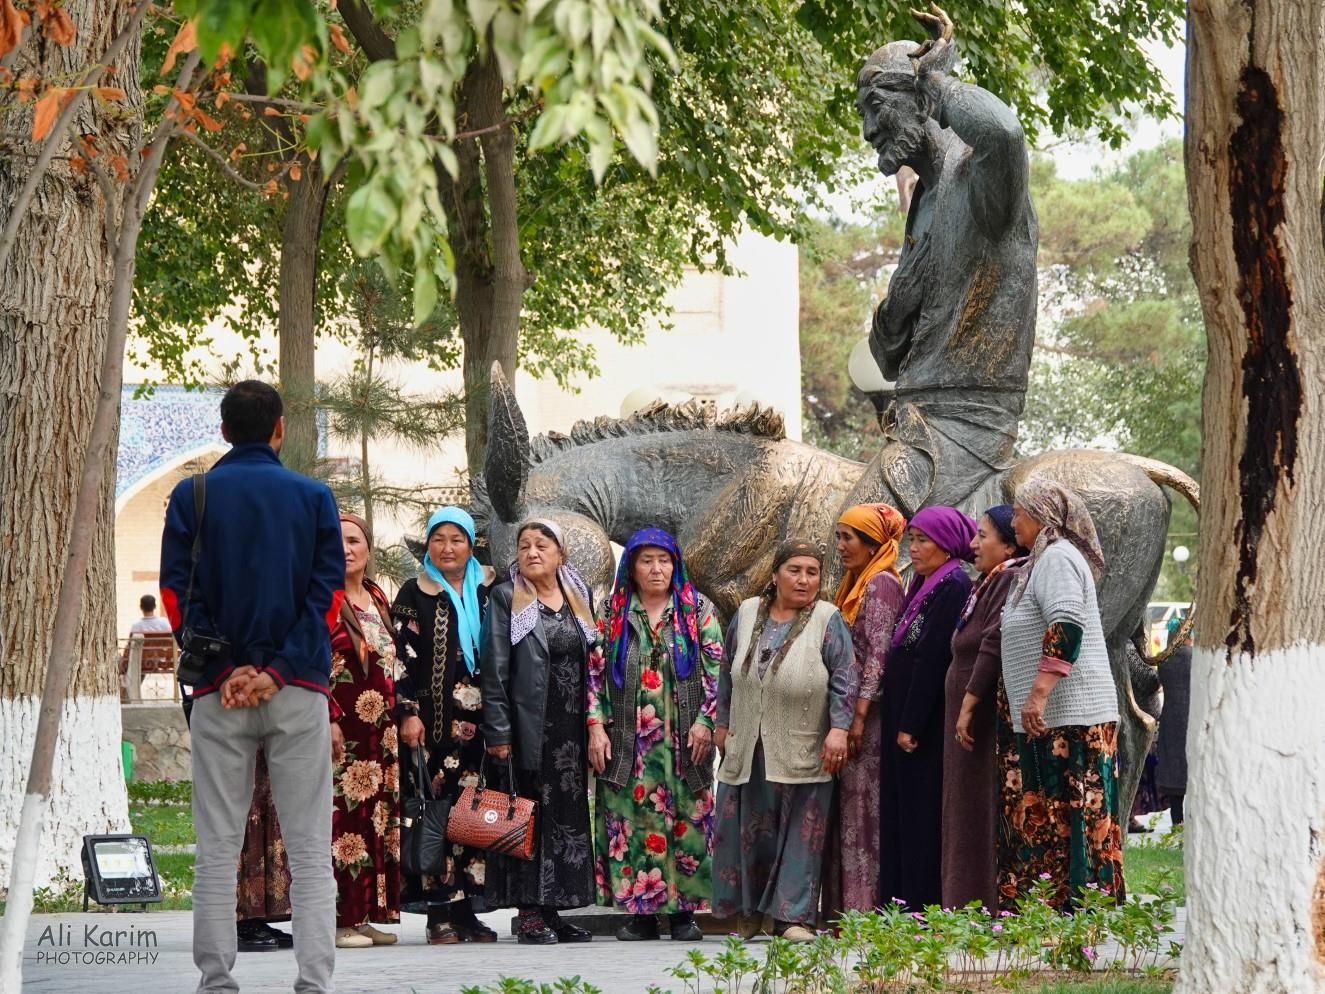 Bukhara, Oct 2019, Local tourists with the statue of Mulla Nasruddin Hodja on his donkey